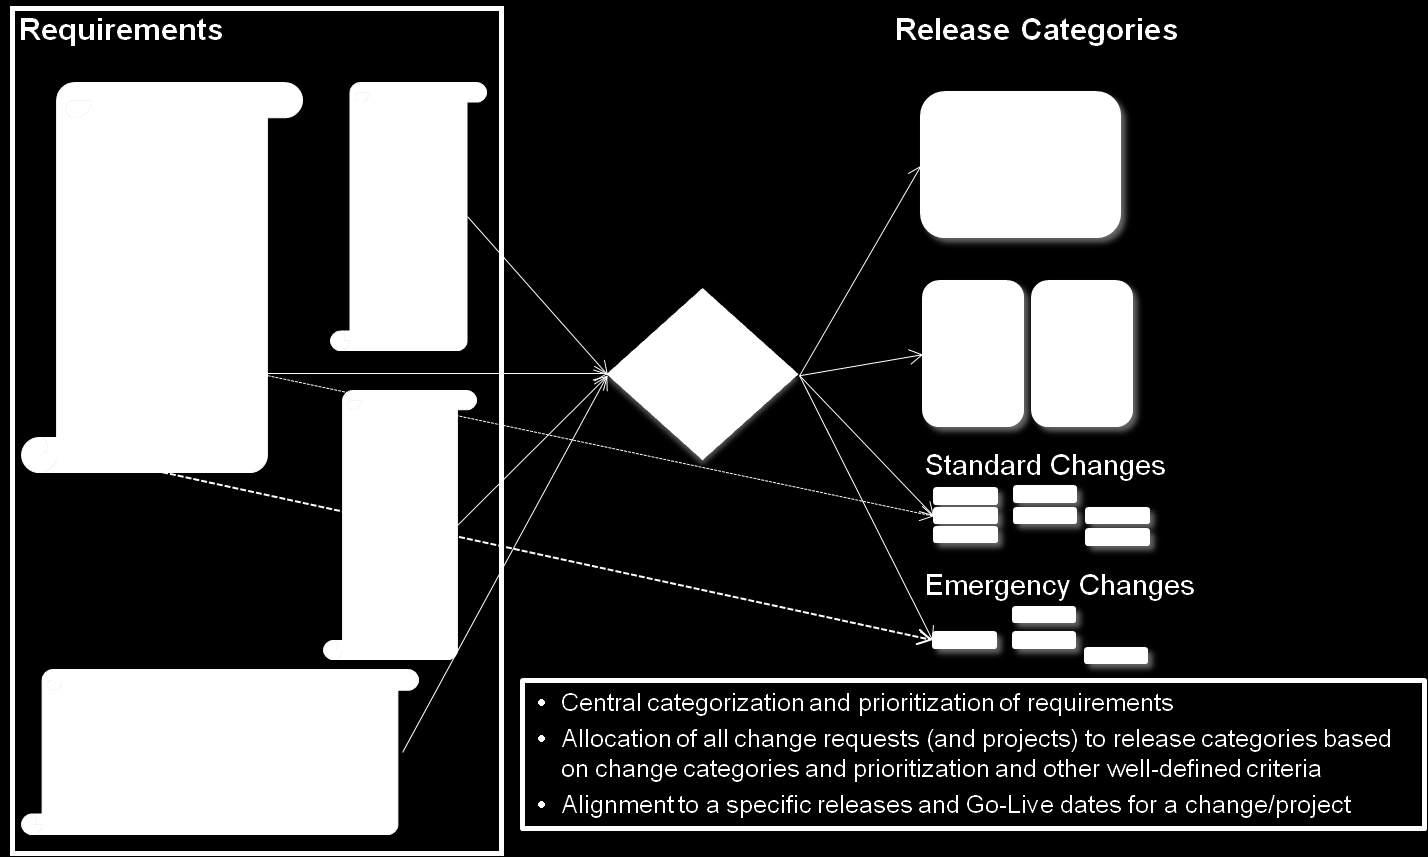 Figure 4: Change Request Management Assessment of the Change Request 2.